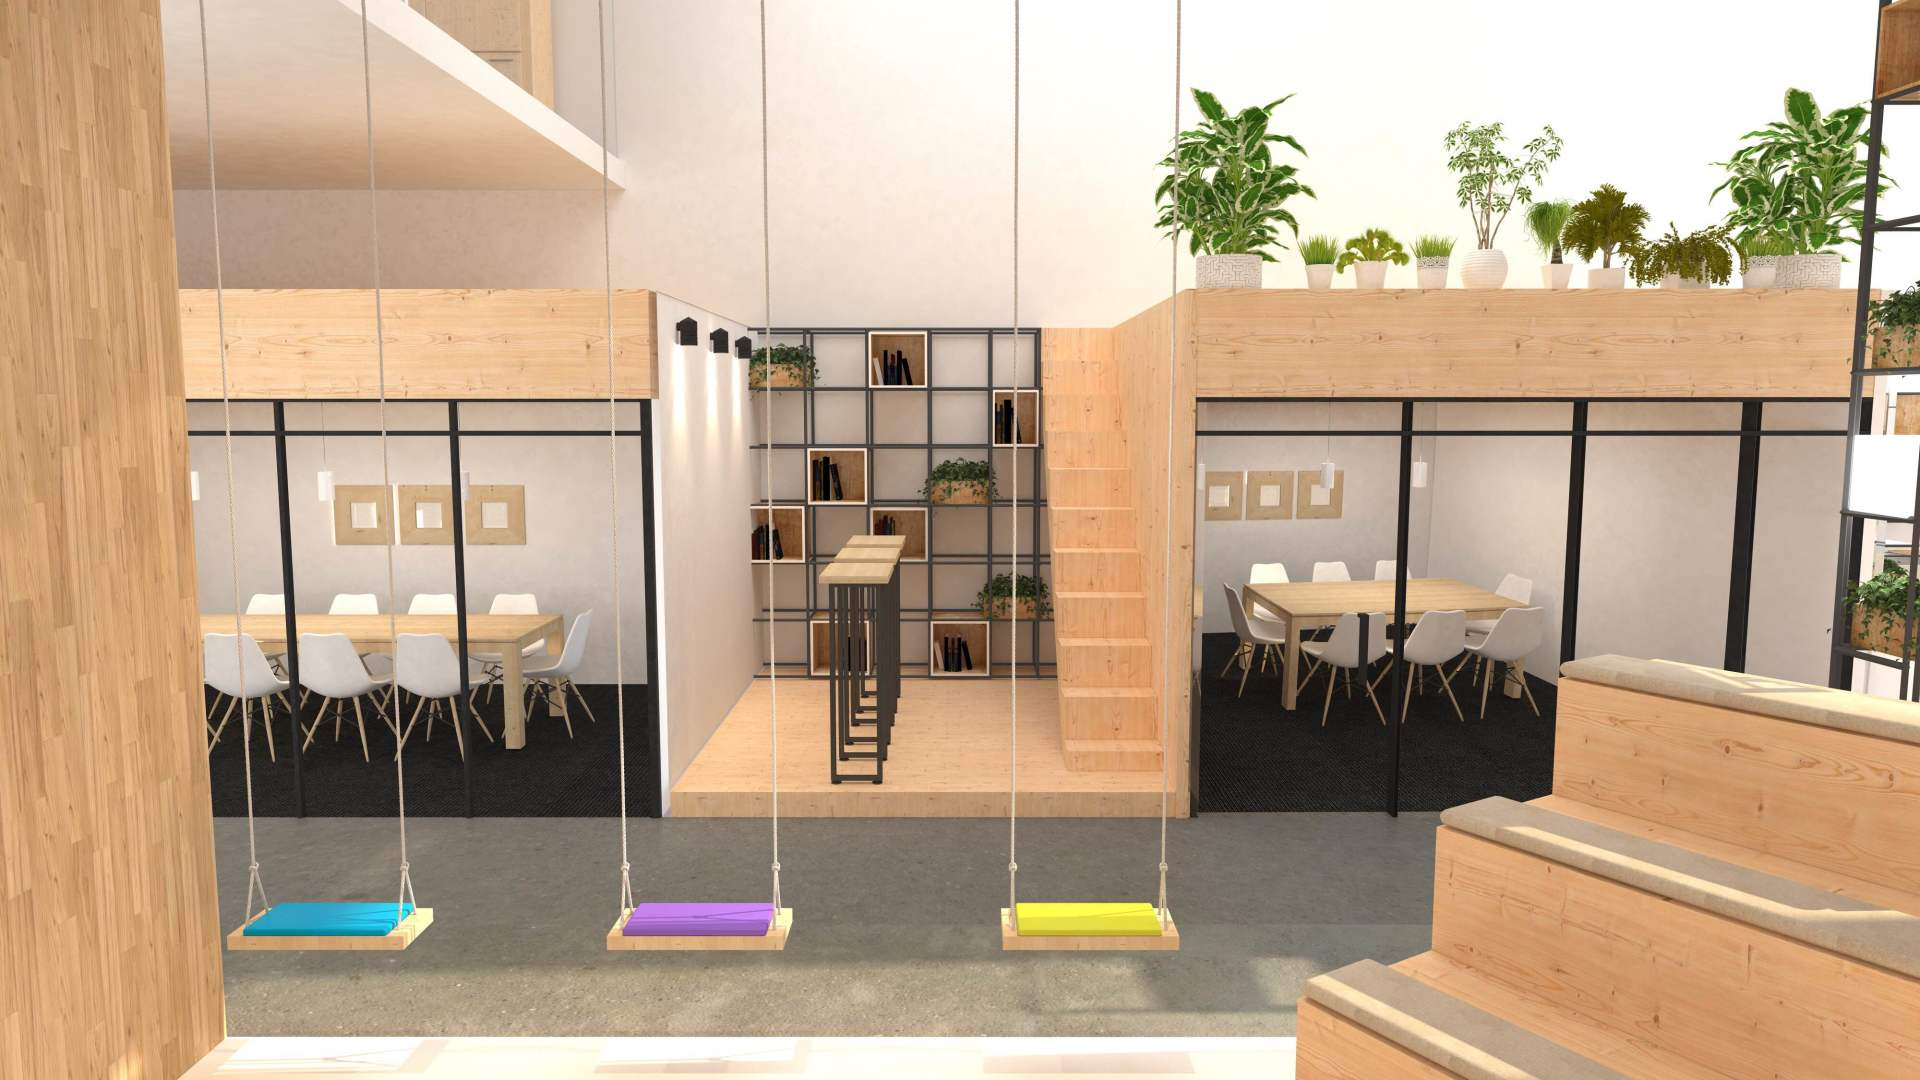 Inspiring places to work, office swings and green plants, fresh interiors for work place , work place of the future, productive office interior design, work in an office that feels like home by Rosha Interiors